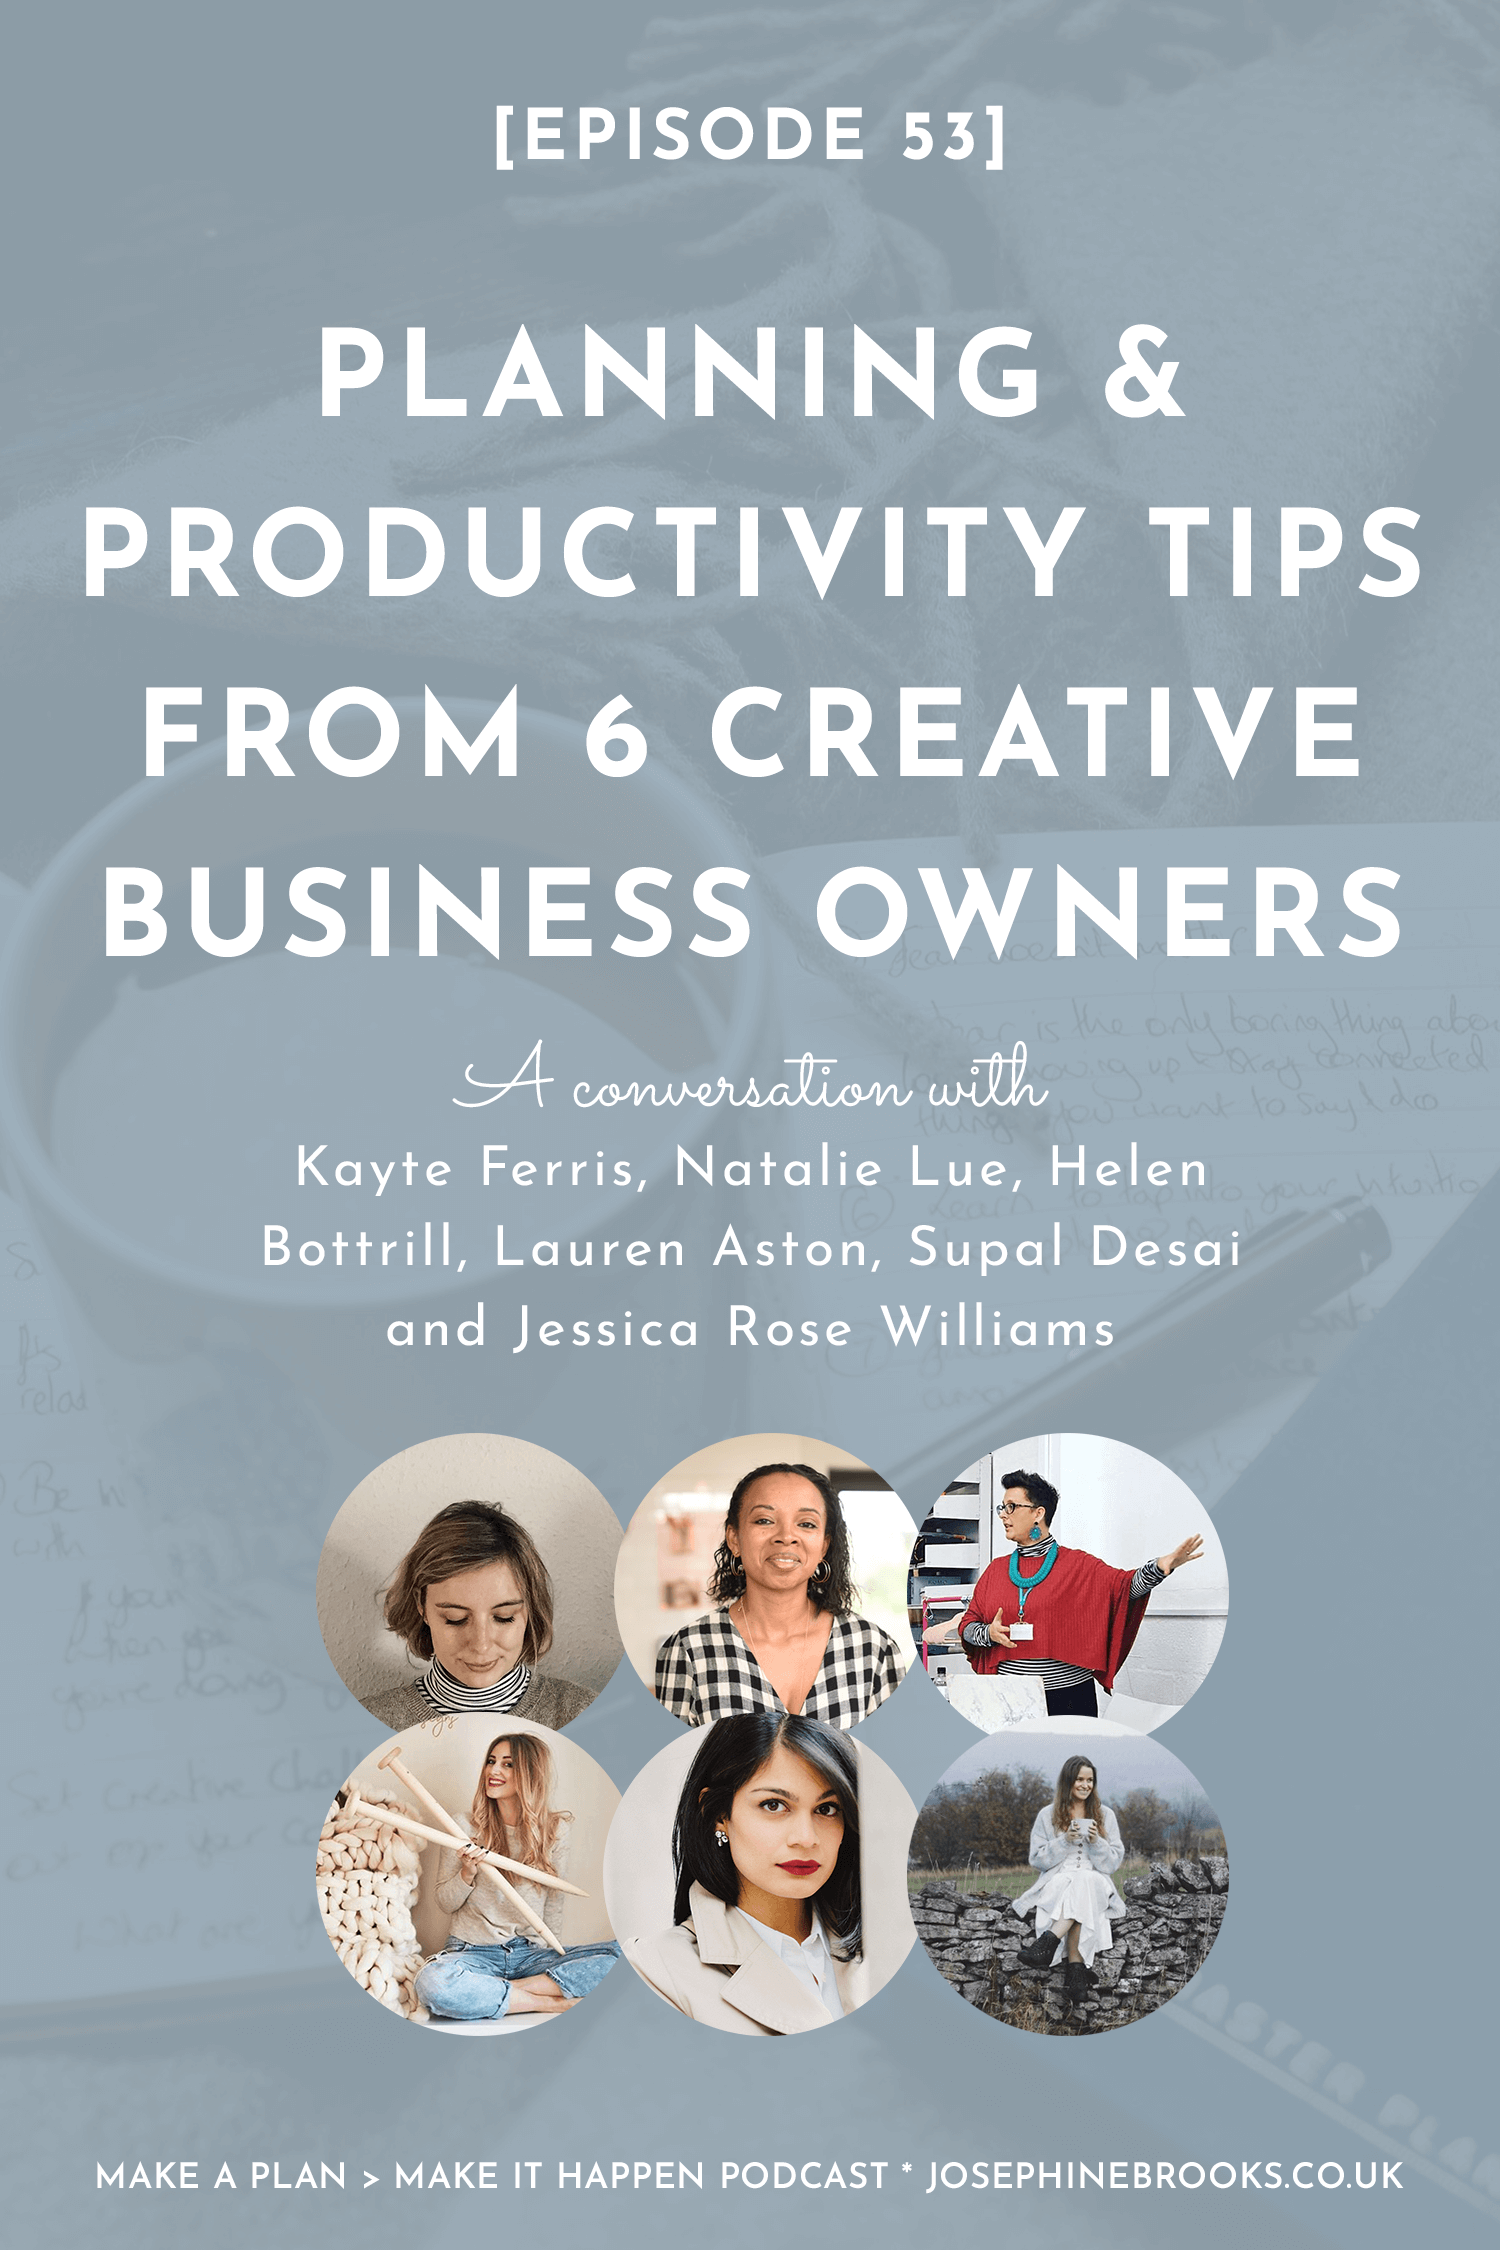 Planning & productivity tips from 6 creative business owners - Make a Plan Kayte Ferris, Natalie Lue, Helen Bottrill, Lauren Aston, Supal Desai, Jessica Rose Williams | Episode 53 Make a Plan Make it Happen Podcast - hosted by Josephine Brooks